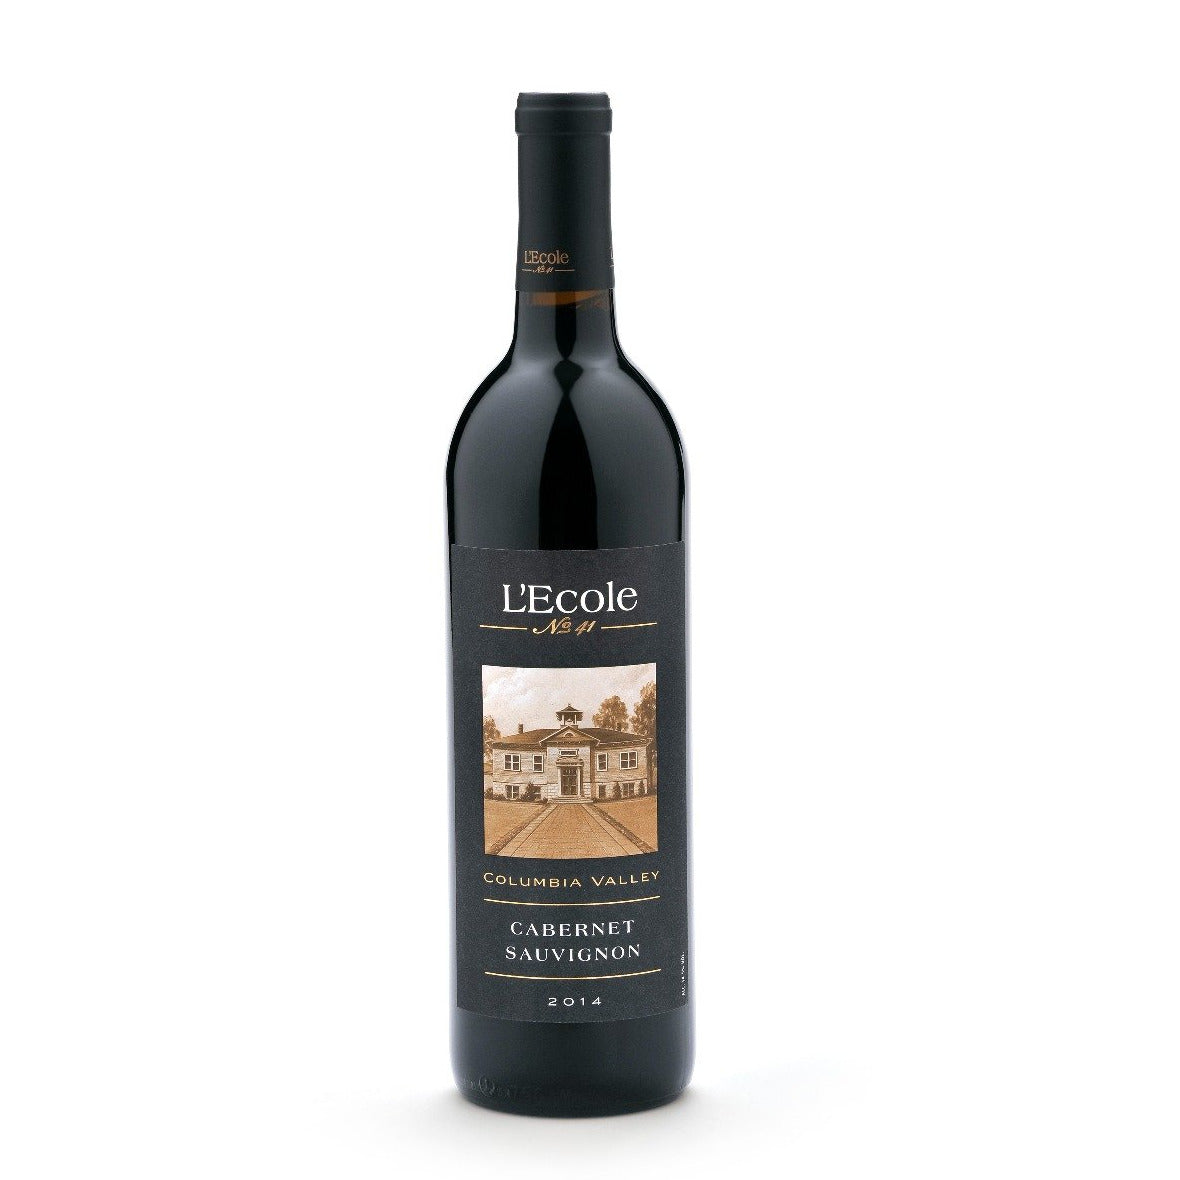 L'Ecole 2014 Cabernet Sauvignon Columbia Valley (750 ML)